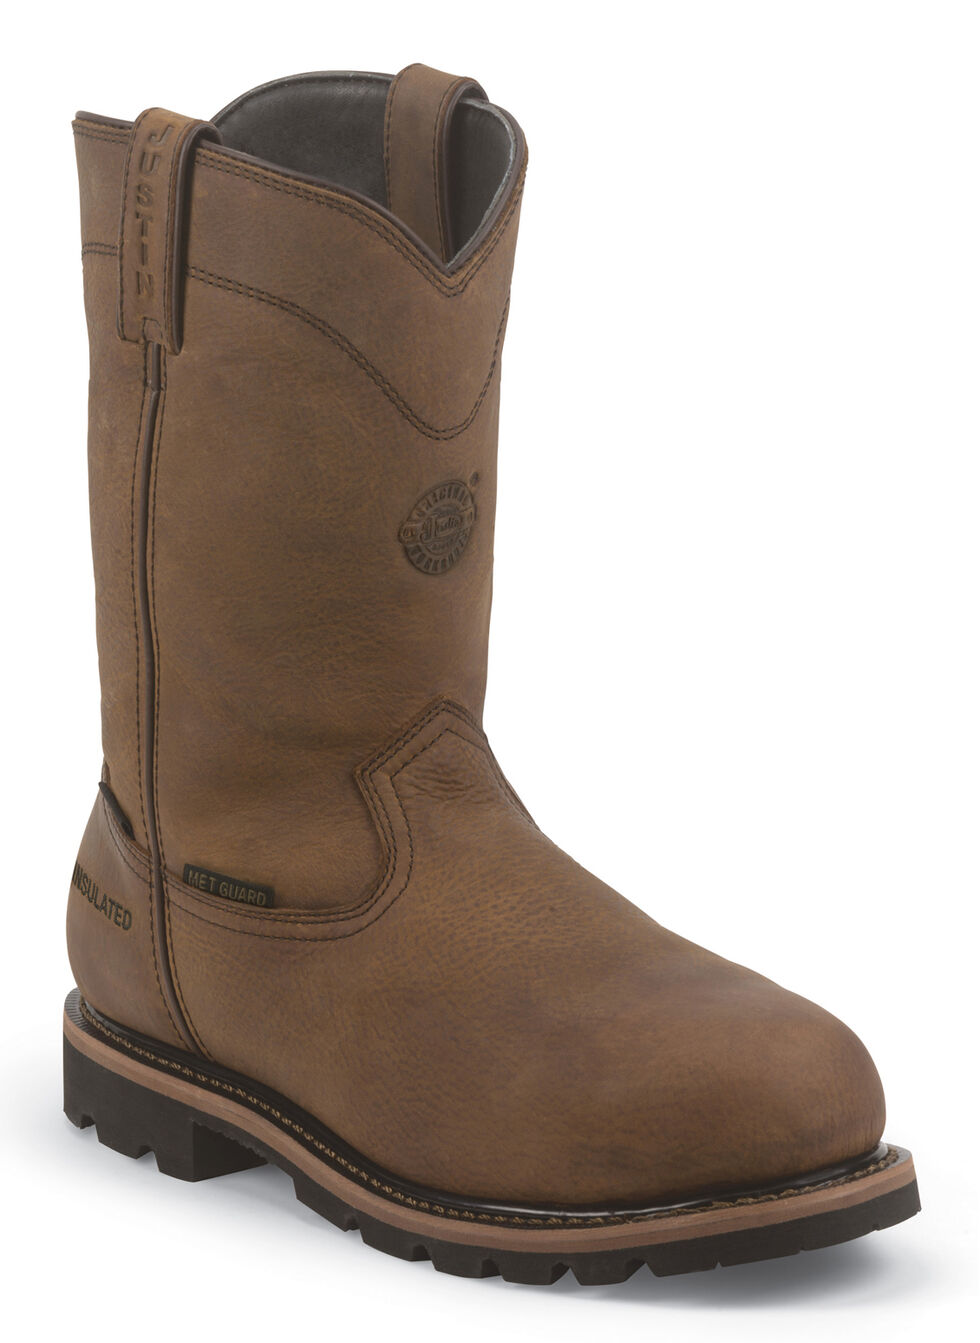 Justin Men's Worker II Wyoming Waterproof Work Boots - Composite Toe, Brown, hi-res